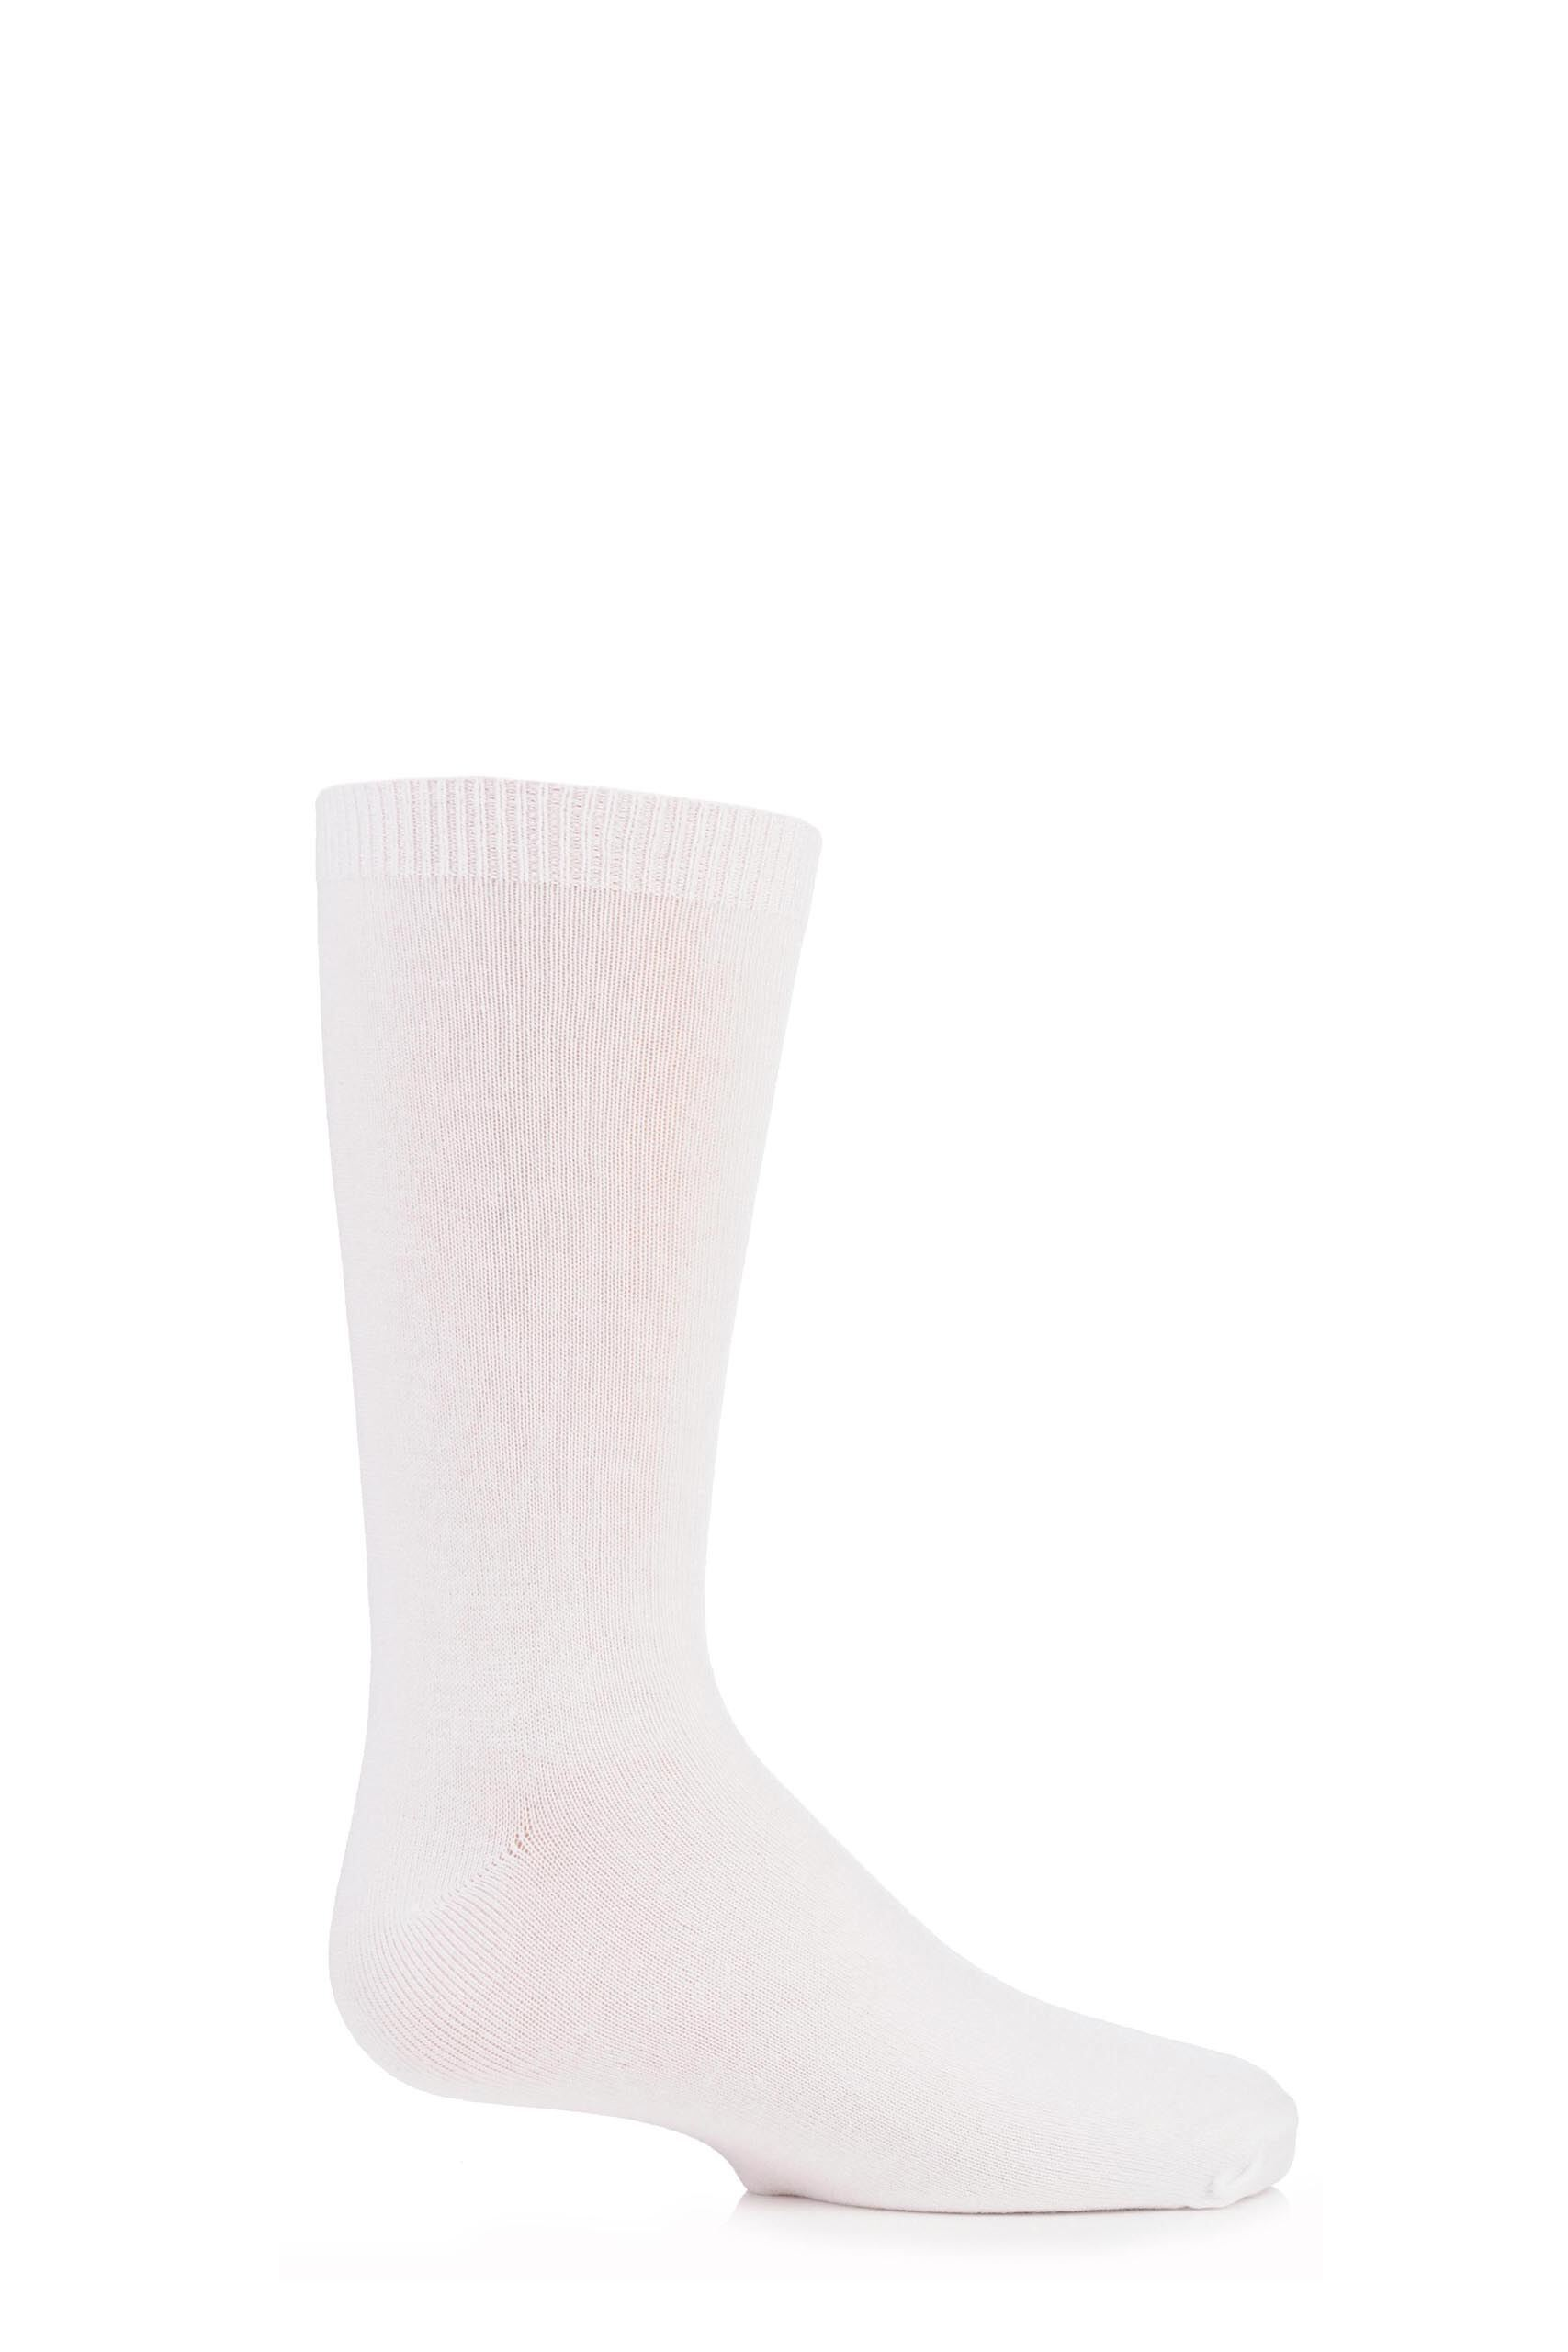 Image of 1 Pair White Plain Bamboo Socks with Comfort Cuff and Smooth Toe Seams Kids Unisex 9-12 Kids (4-7 Years) - SOCKSHOP